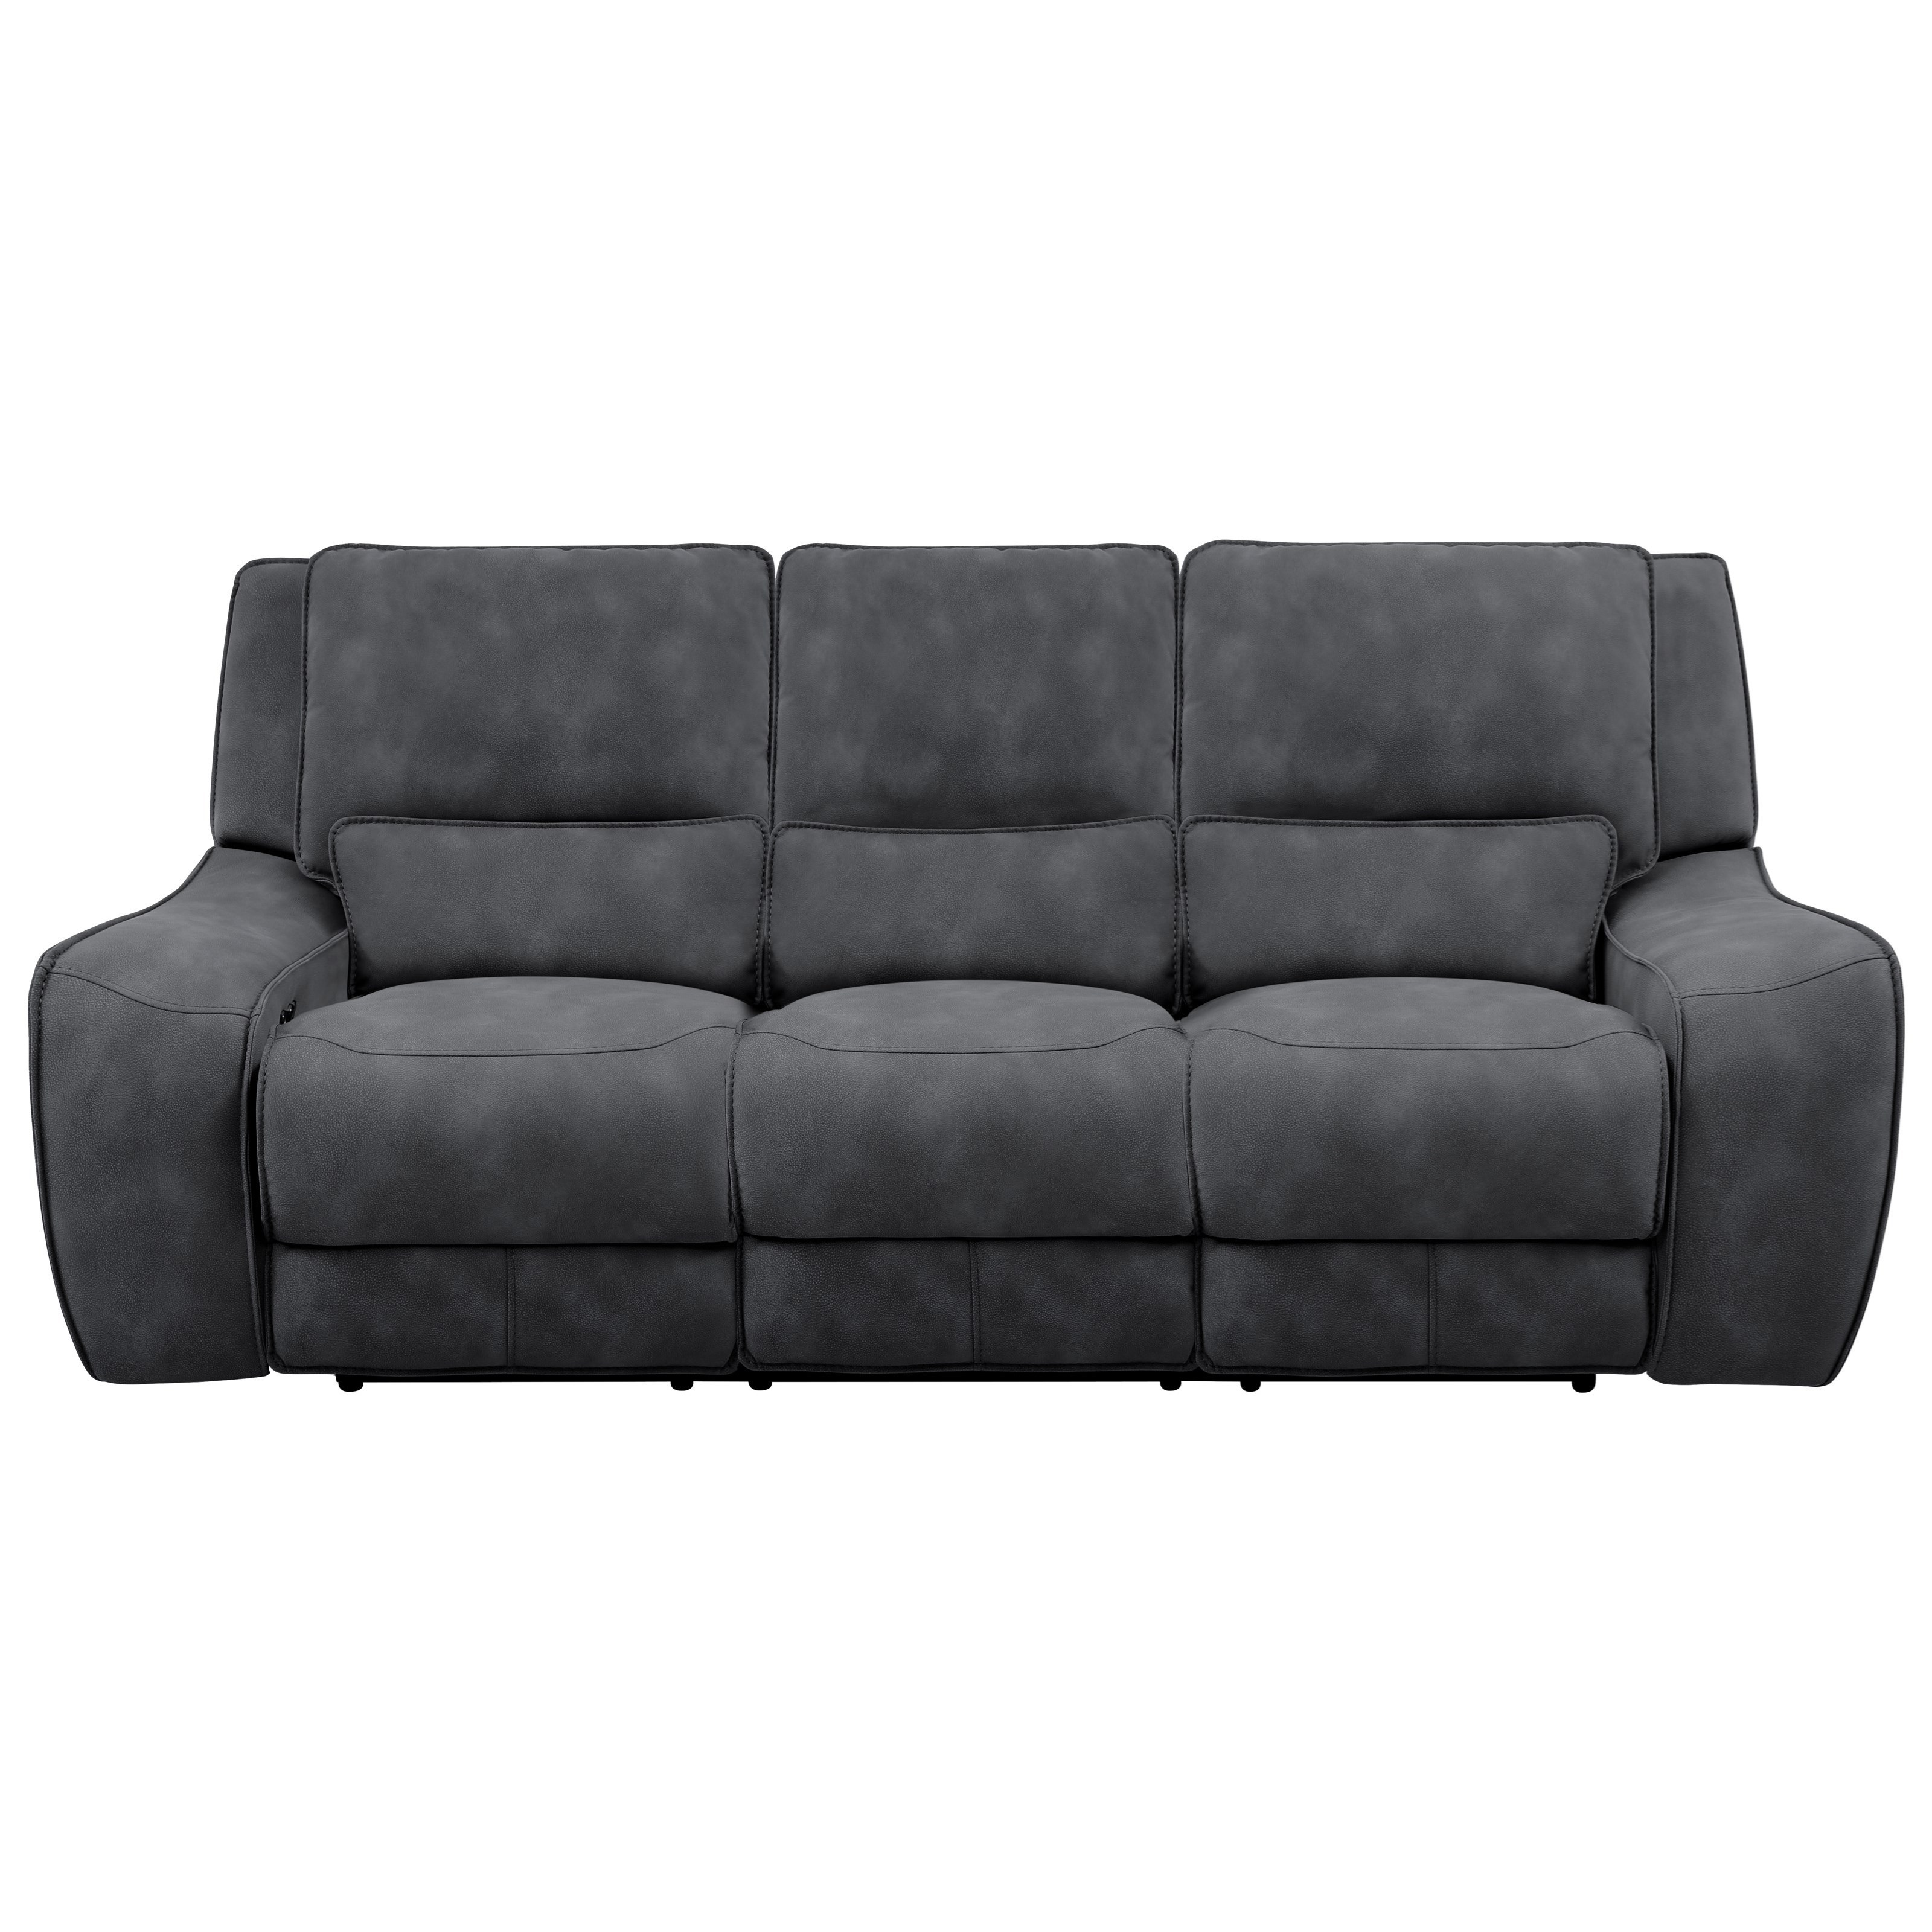 90027 Power Reclining Sofa by Cheers at Household Furniture